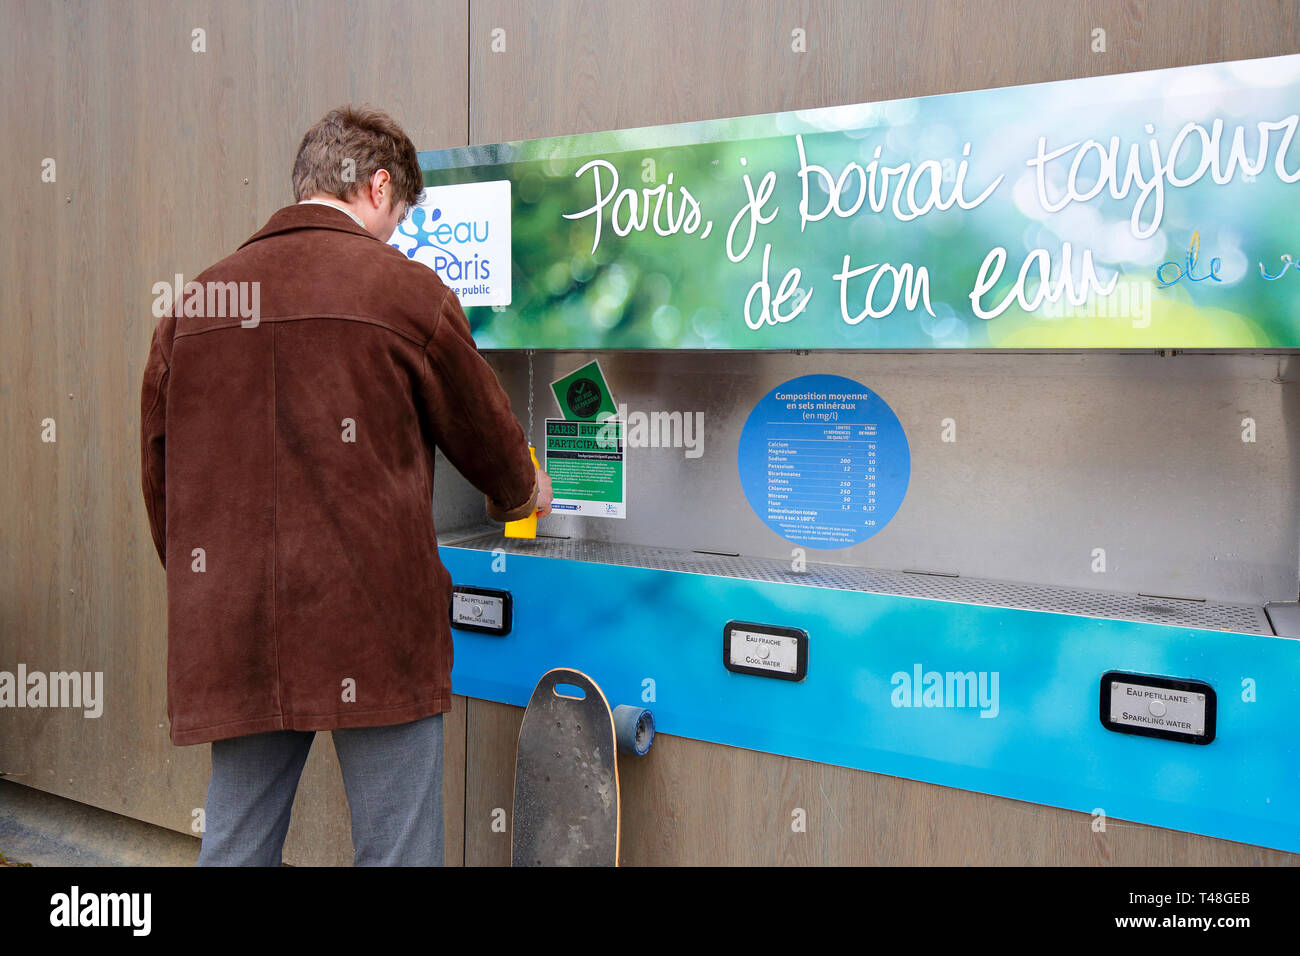 a-person-filling-a-bottle-with-carbonated-water-at-a-public-water-fountain-in-paris-T48GEB.jpg